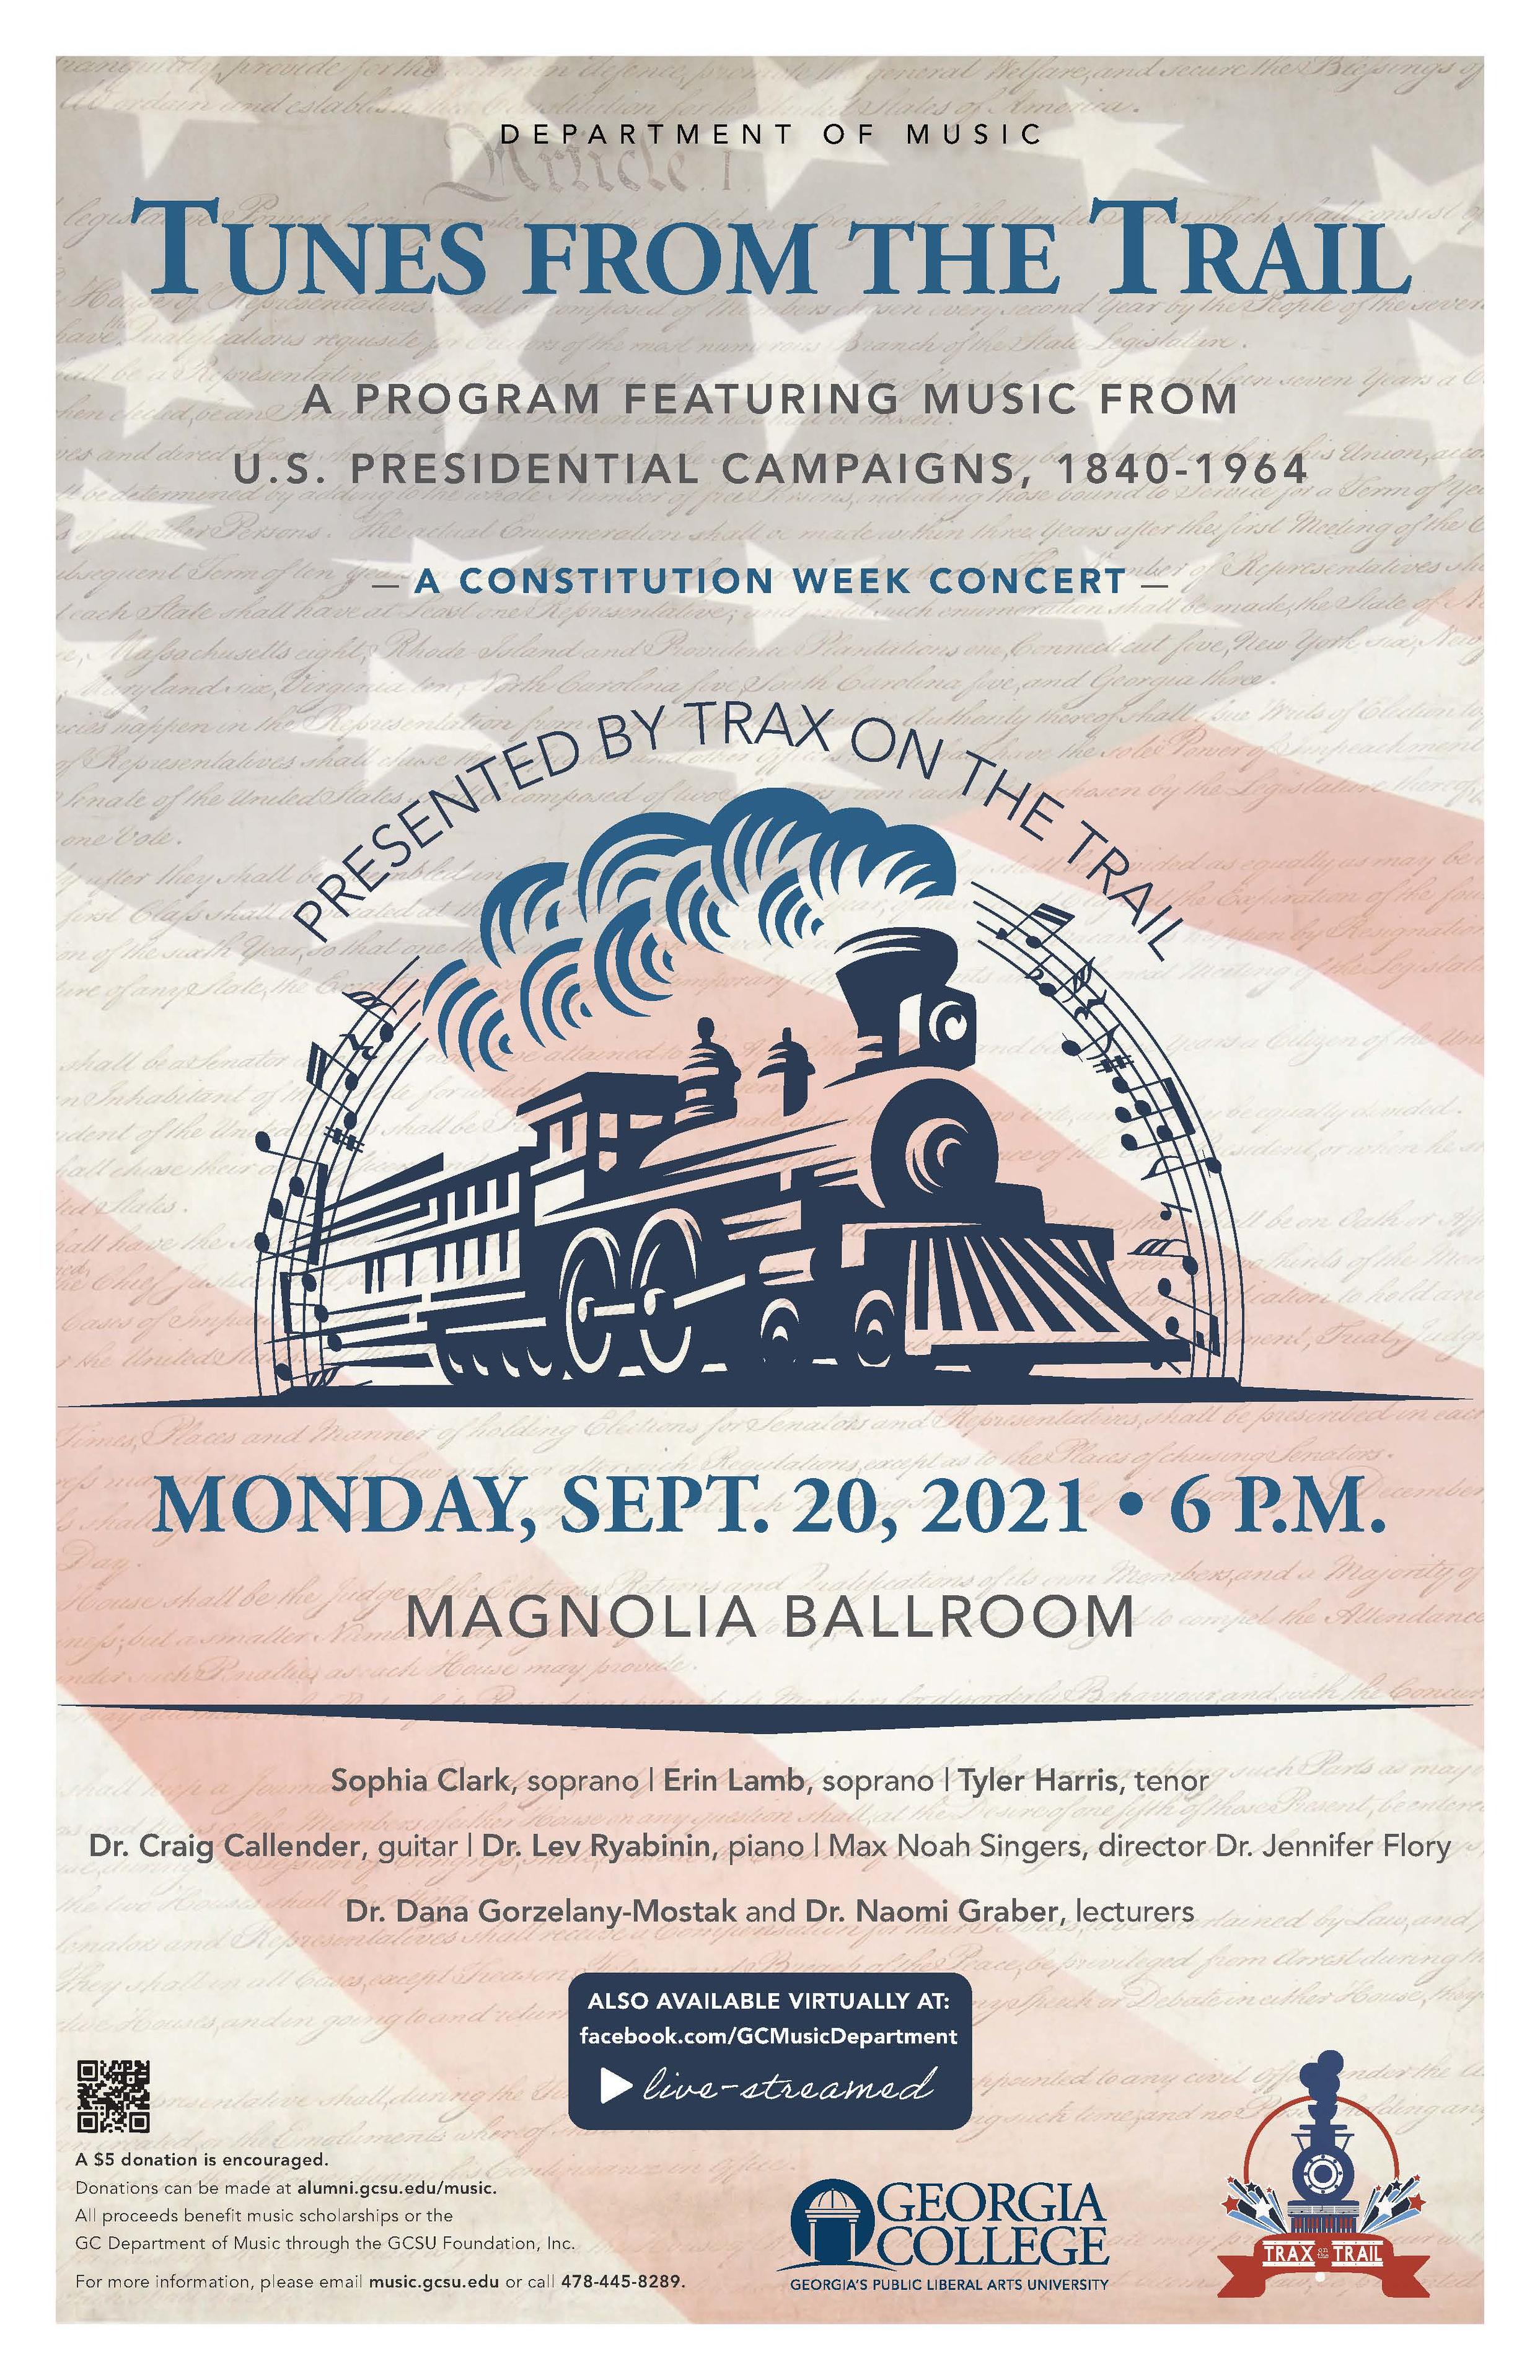 Please join us Monday, Sept. 20, 6 pm for our Constitution Week Concert.